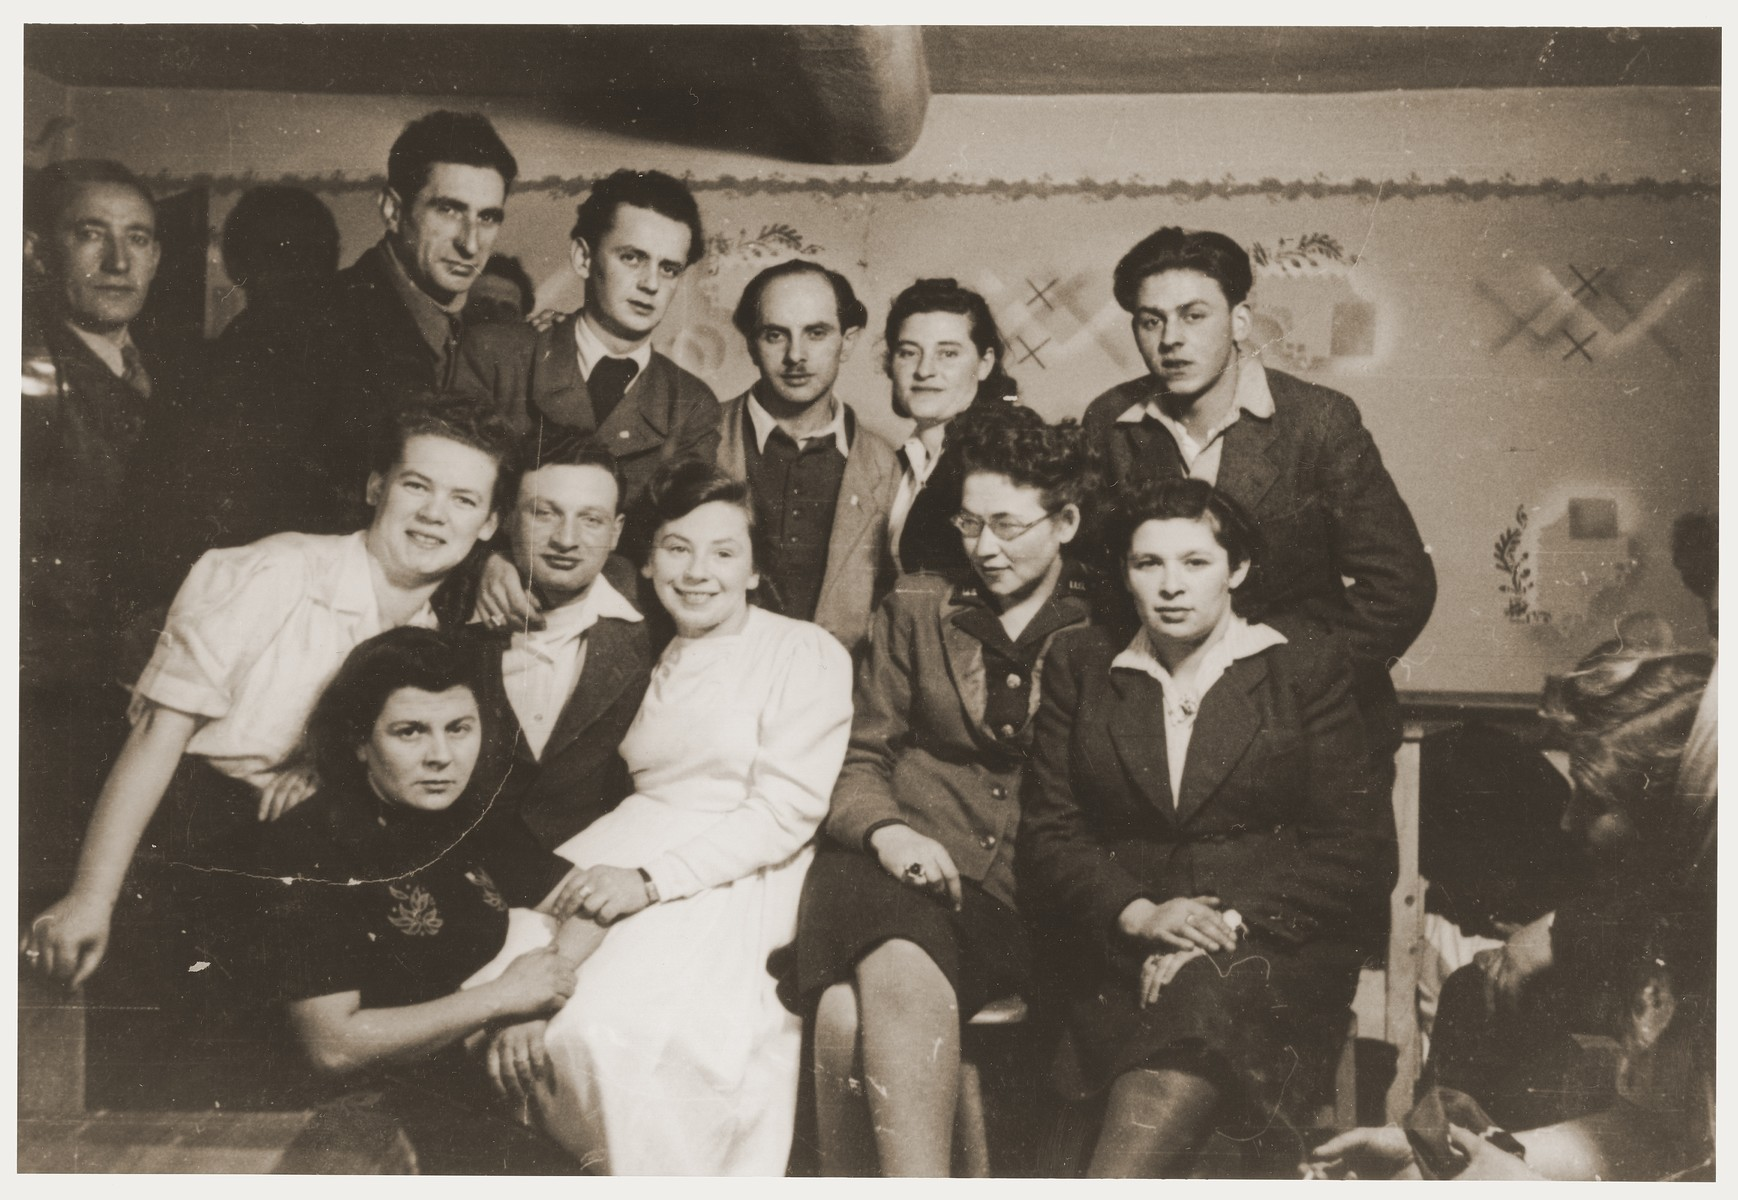 Group portrait of members of the Kibbutz Nili hachshara (Zionist collective) at the wedding of two of their members.    Among those pictured are Noach and Sara (Feldberg) Miedzinski (in the back row center).  Noach frequently performed weddings in the camp.